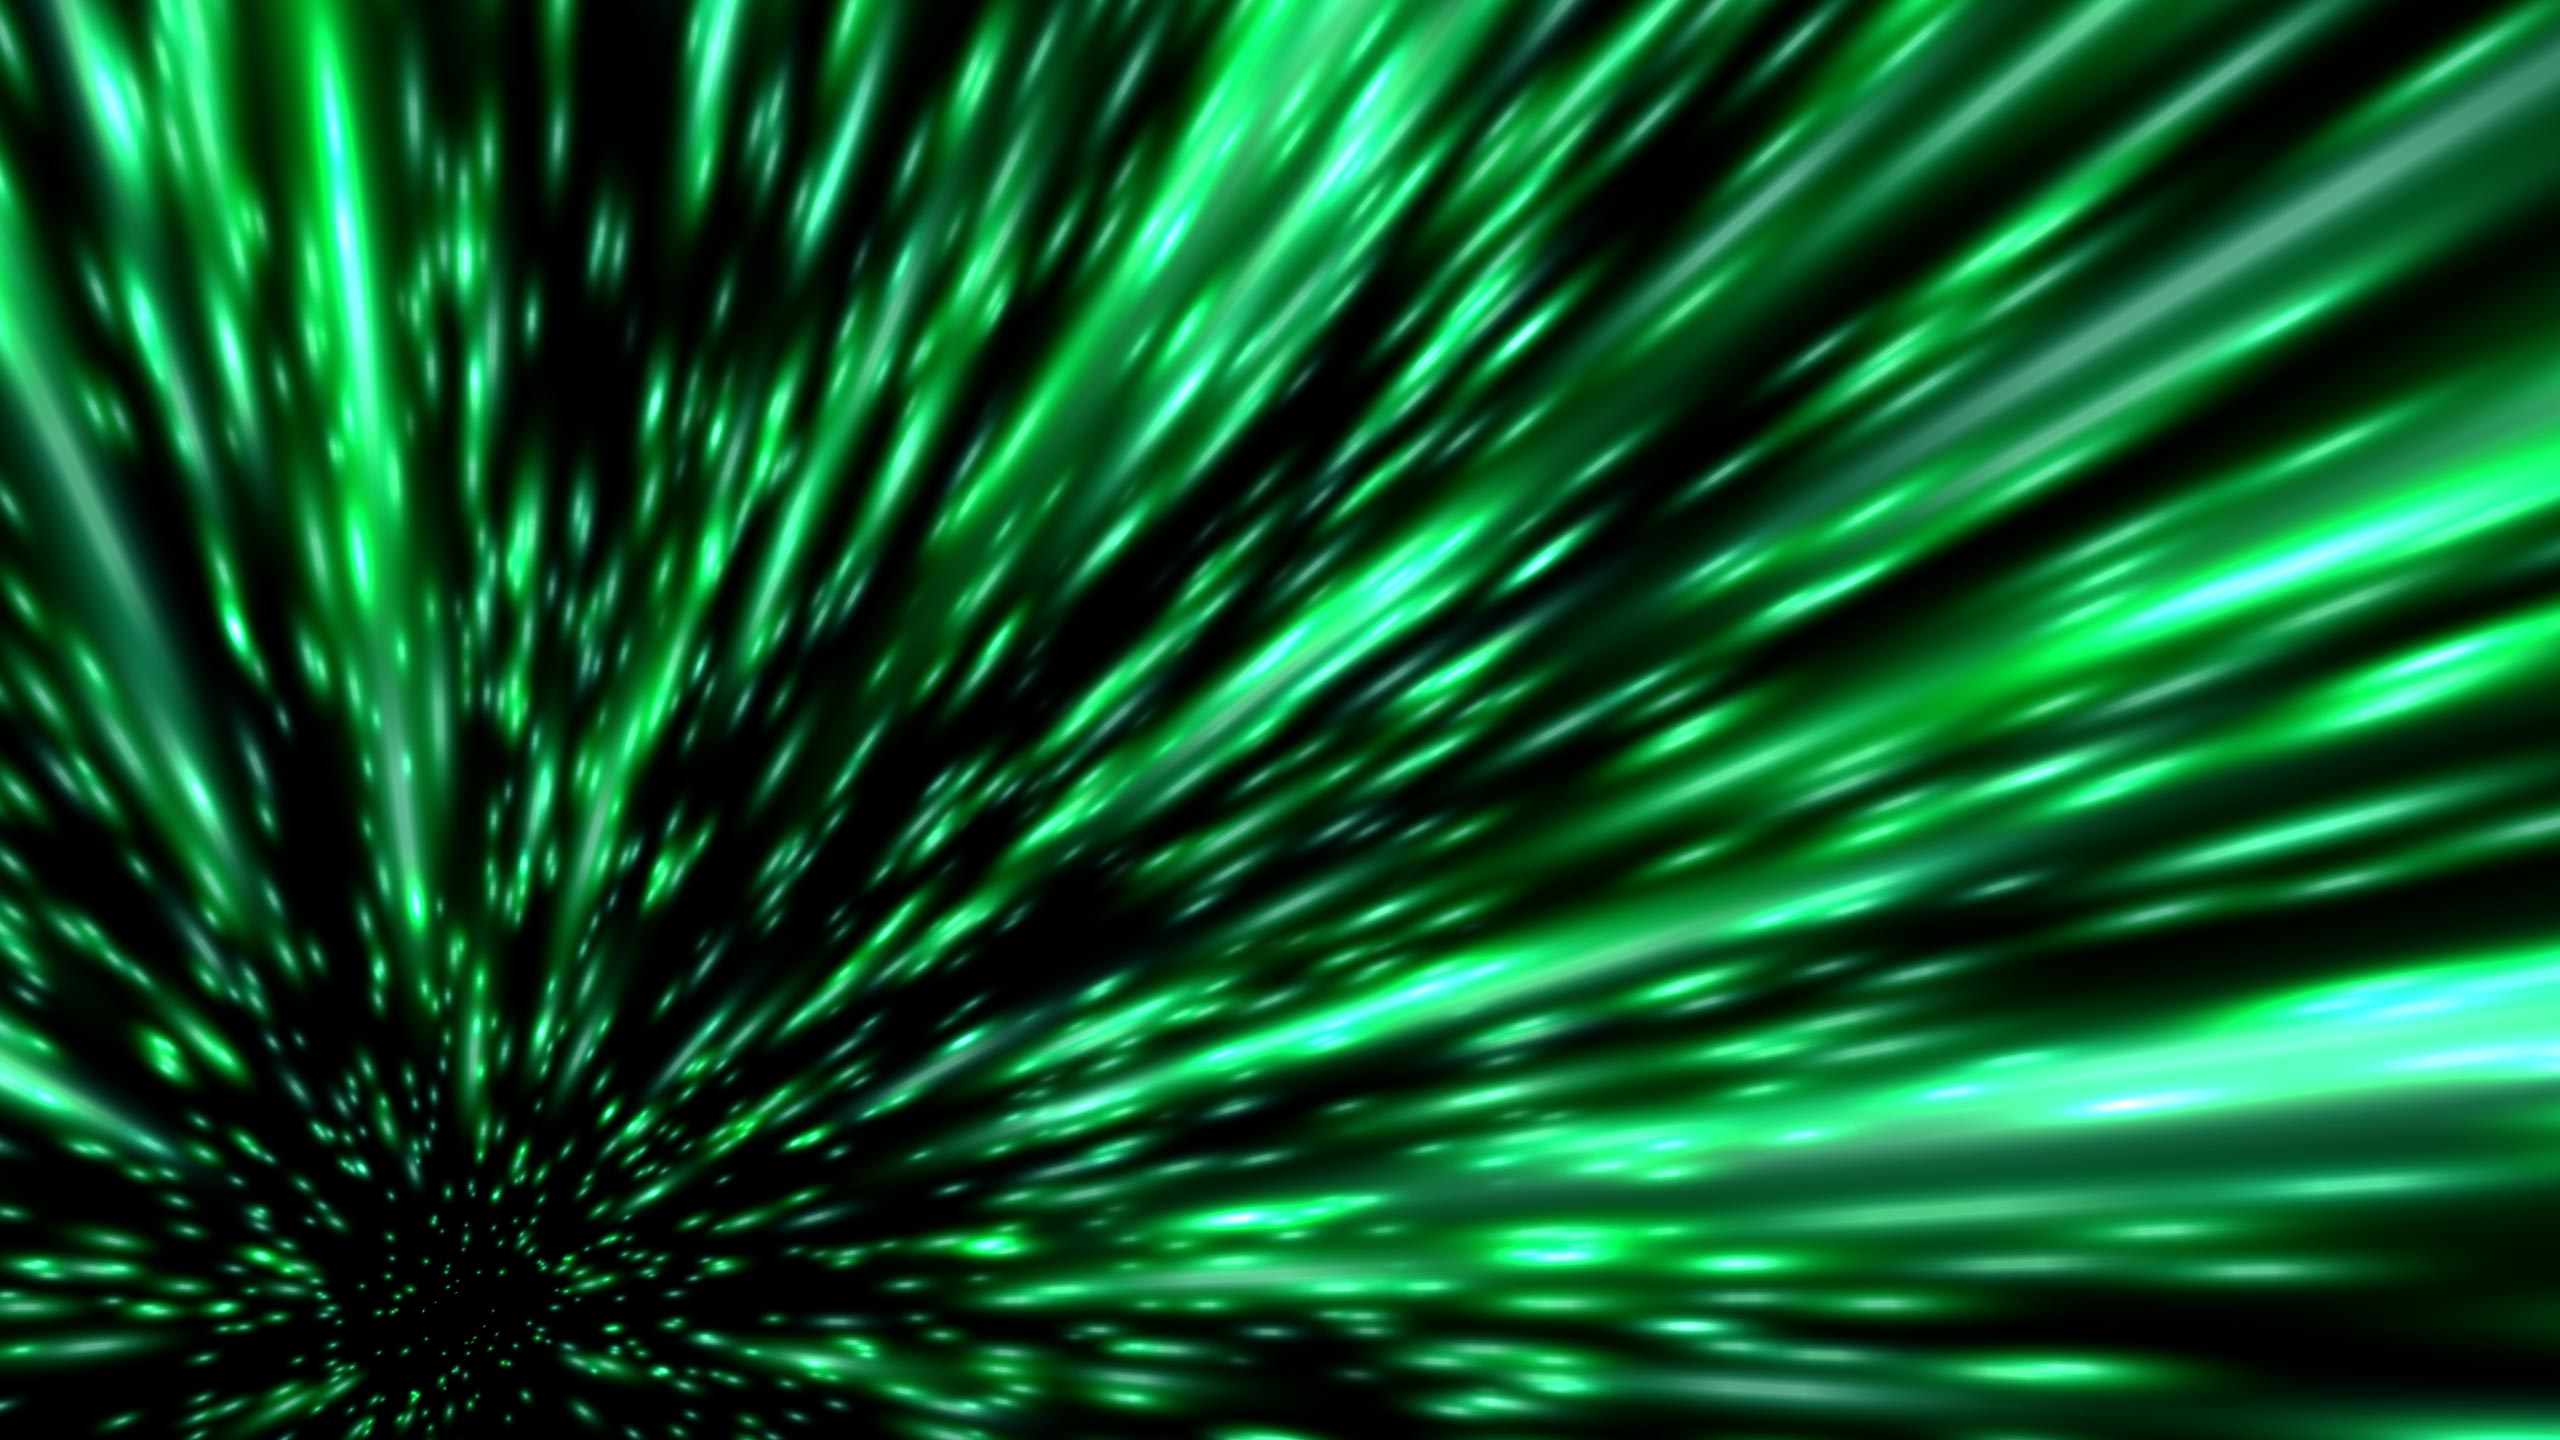 Hyperspace 3d Live Wallpaper Live Wallpapers And Screensavers For Windows 10 8 7